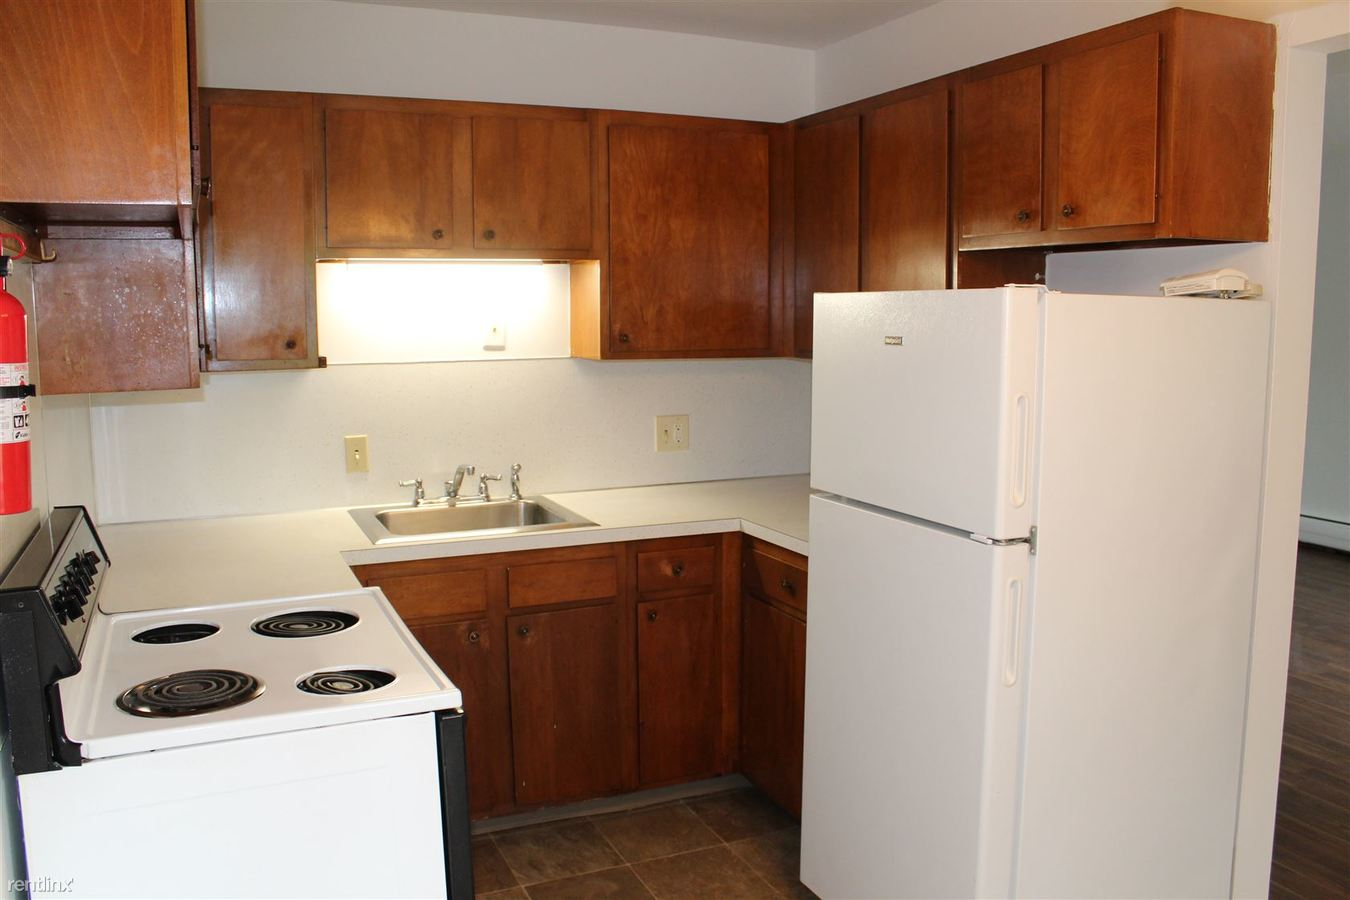 2 Bedrooms 1 Bathroom Apartment for rent at 1310 Packard St in Ann Arbor, MI